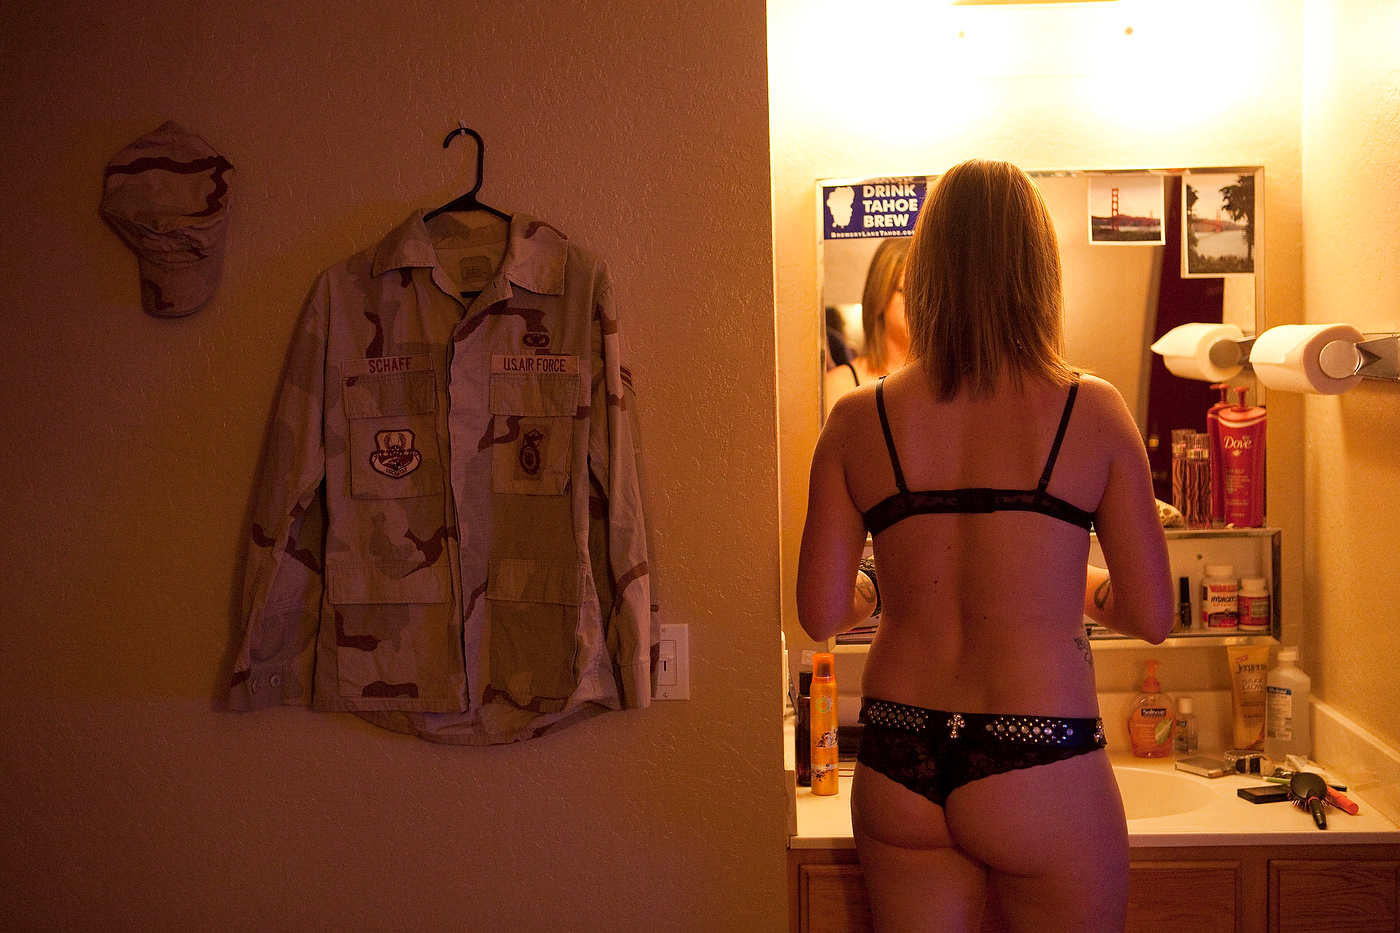 Iraq veteran Air Force Amber gets ready for a client.